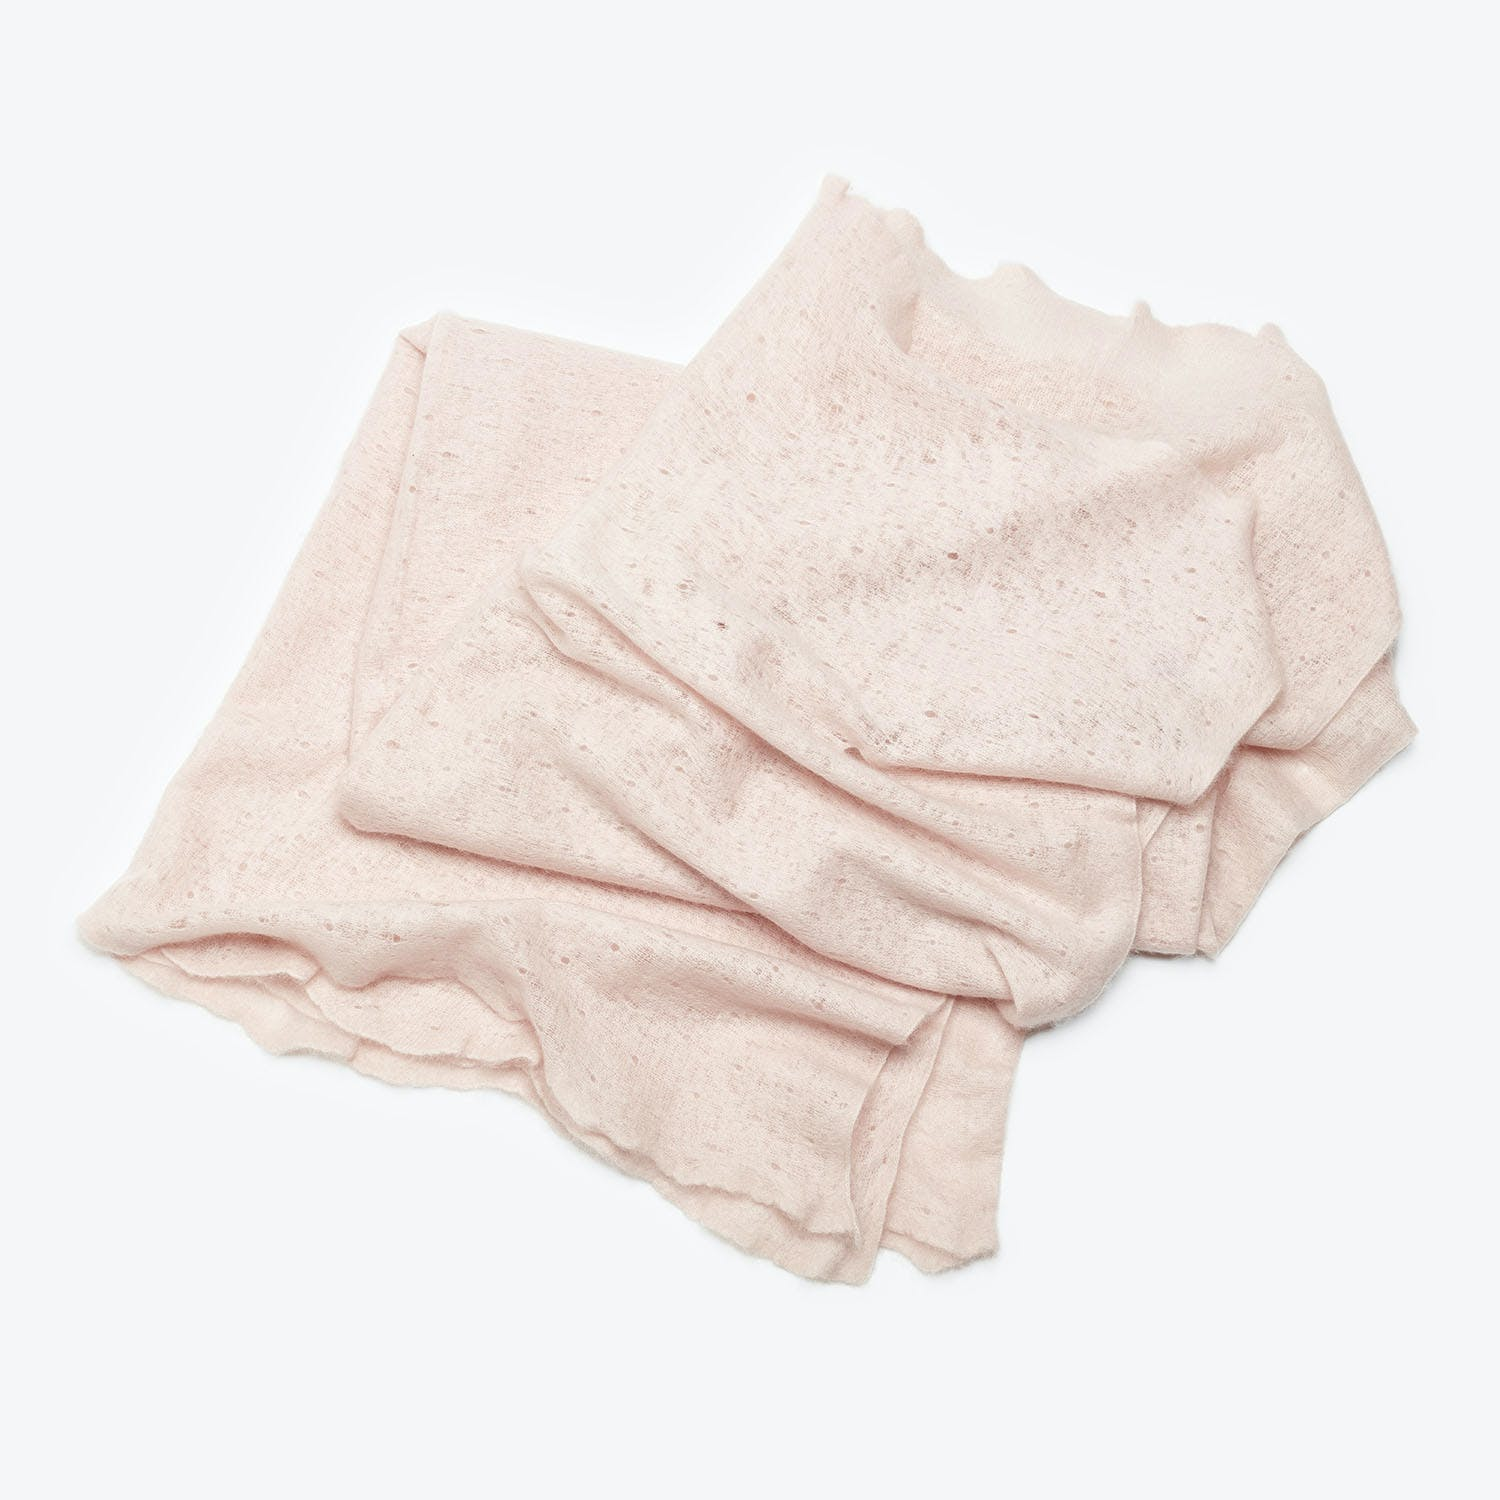 abcDNA Cashmere Micro Throw Lotus Pink